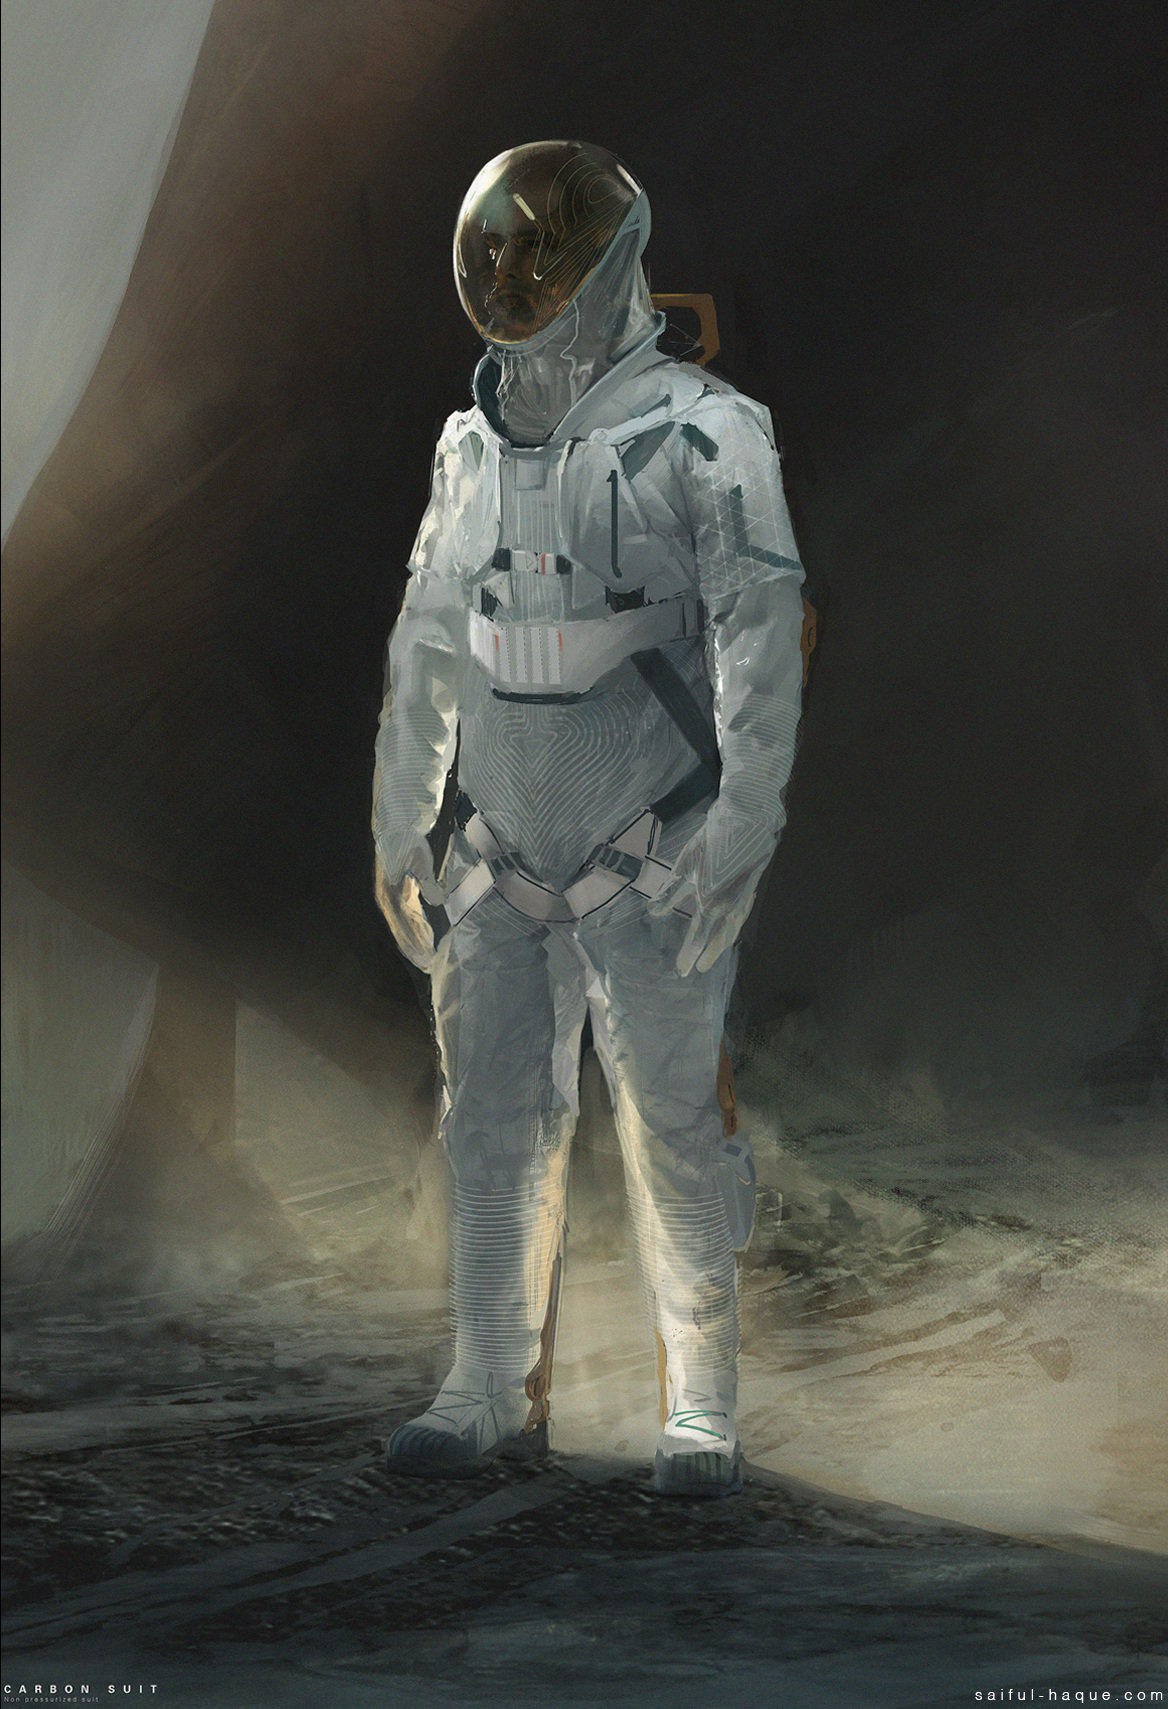 Saiful haque carbon spacesuit saifulhaque 1168